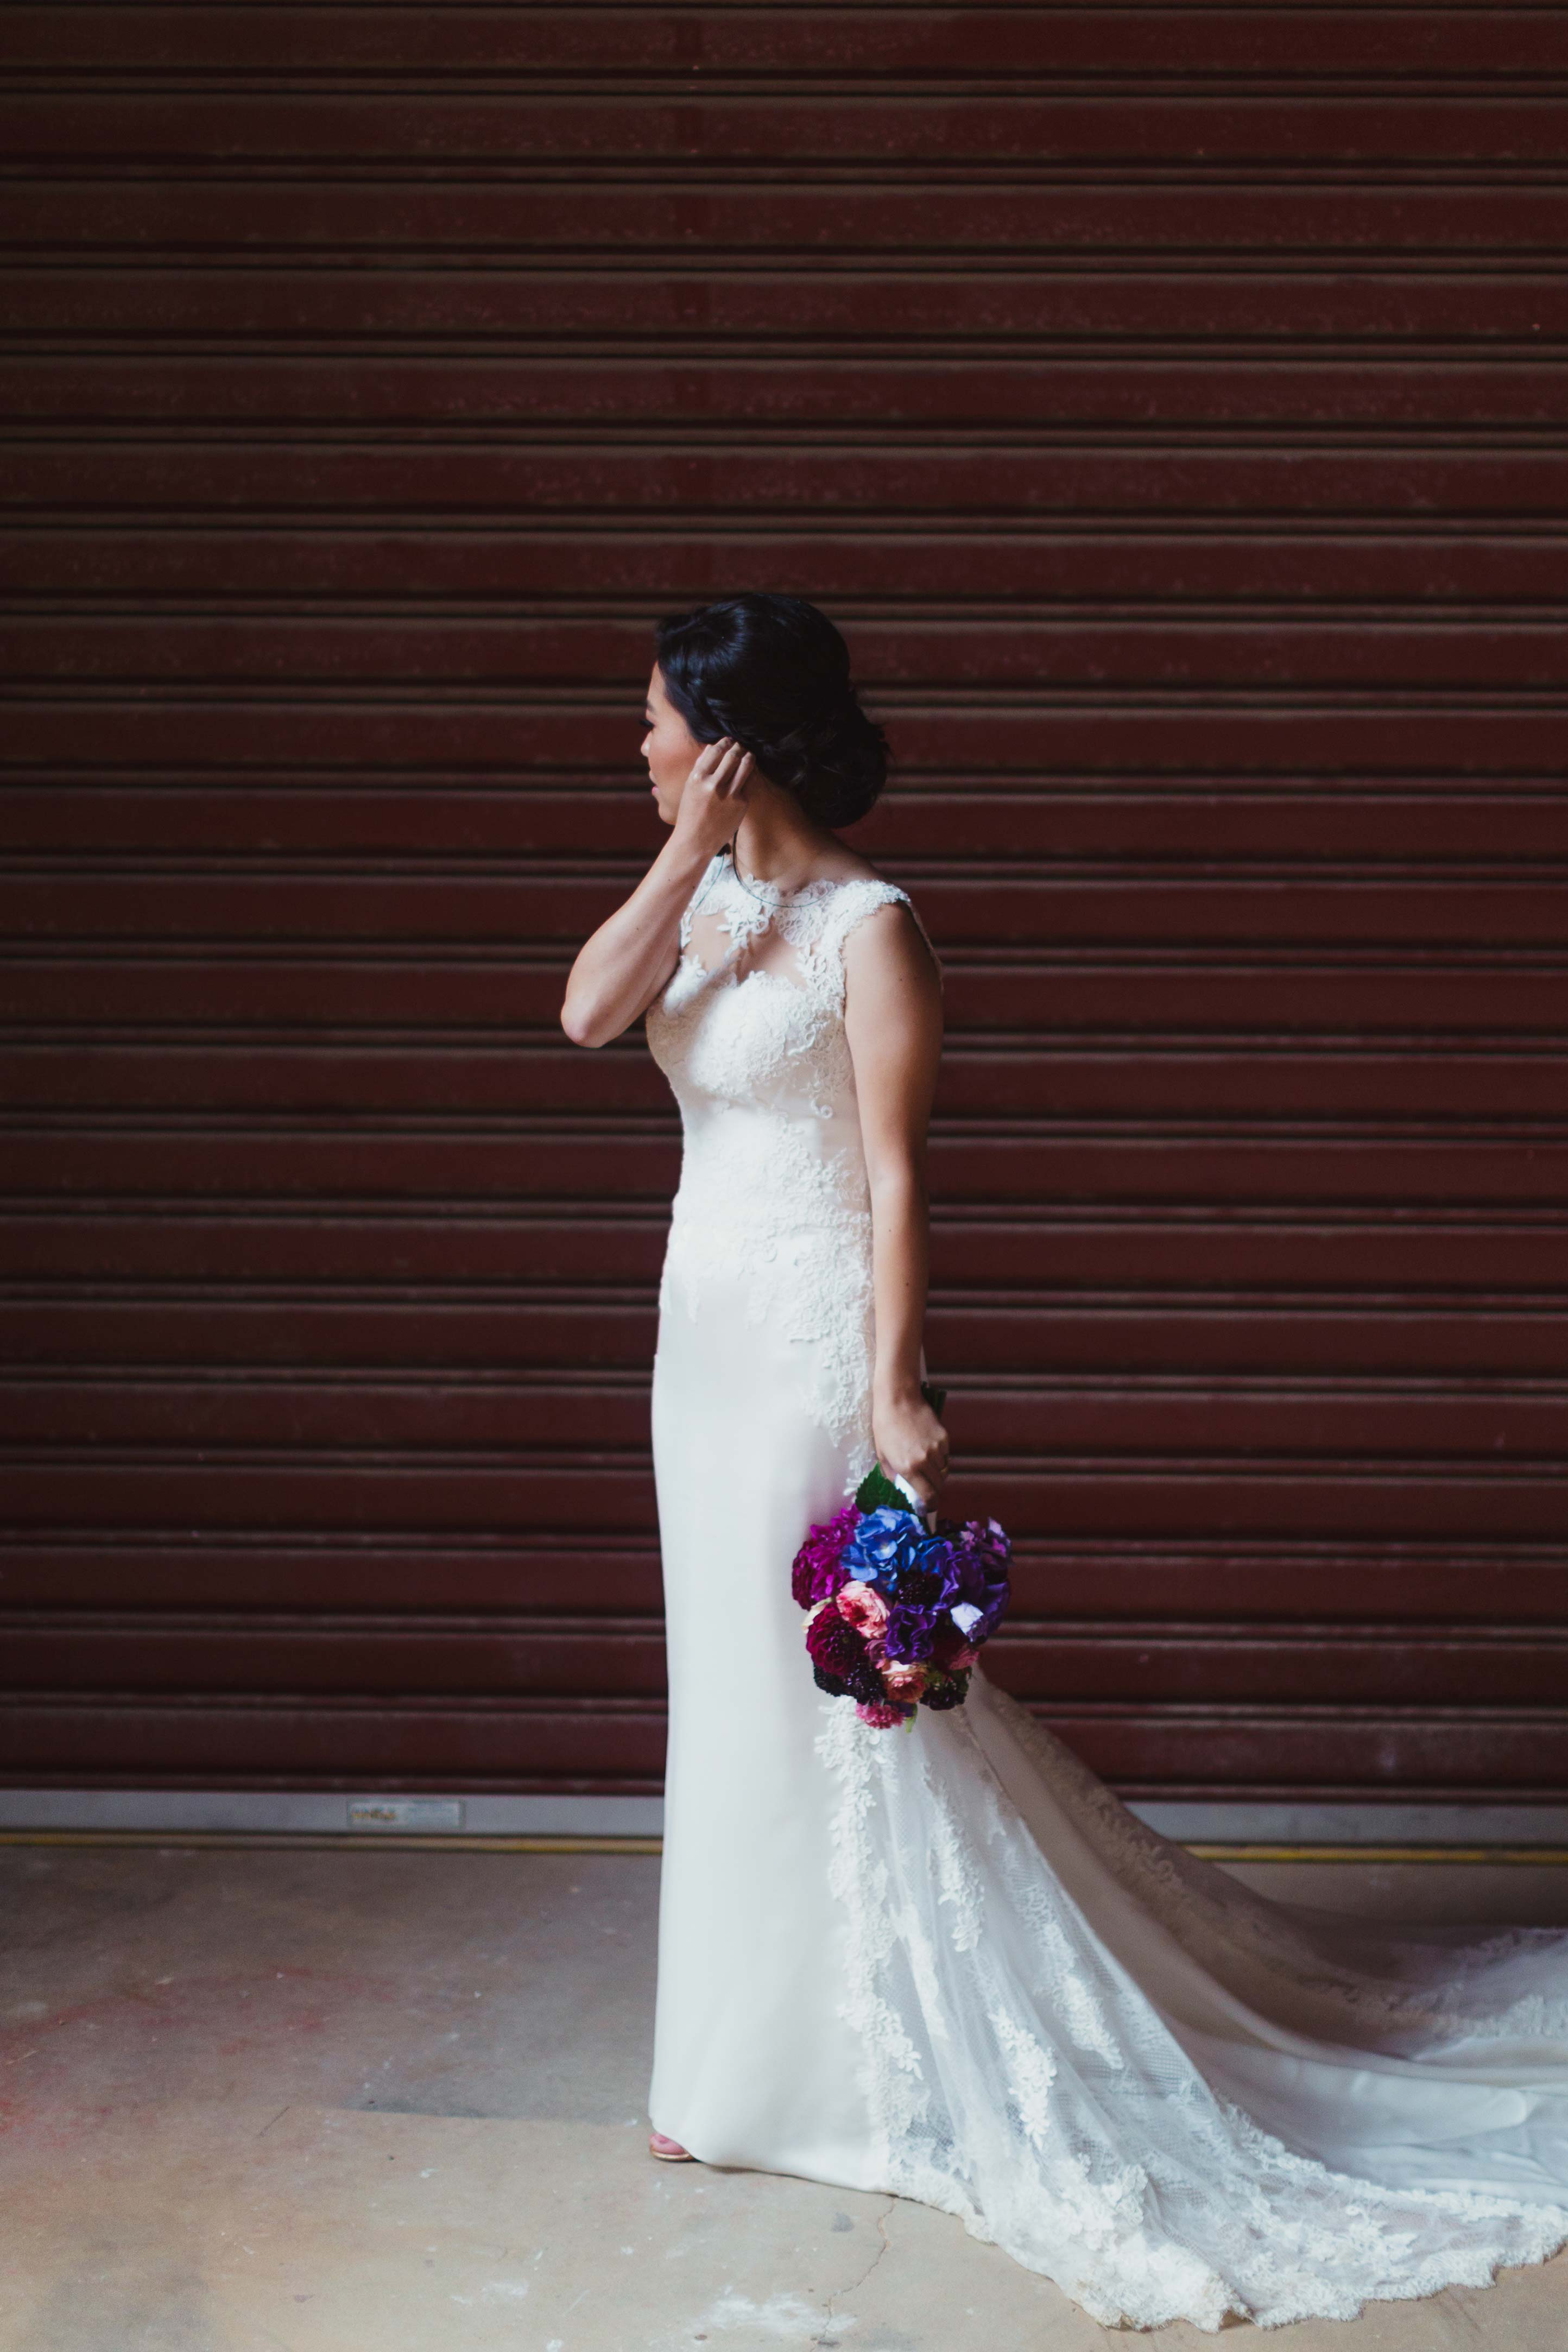 Melbourne-Richmond-Glasshaus-Wedding-bride-portrait